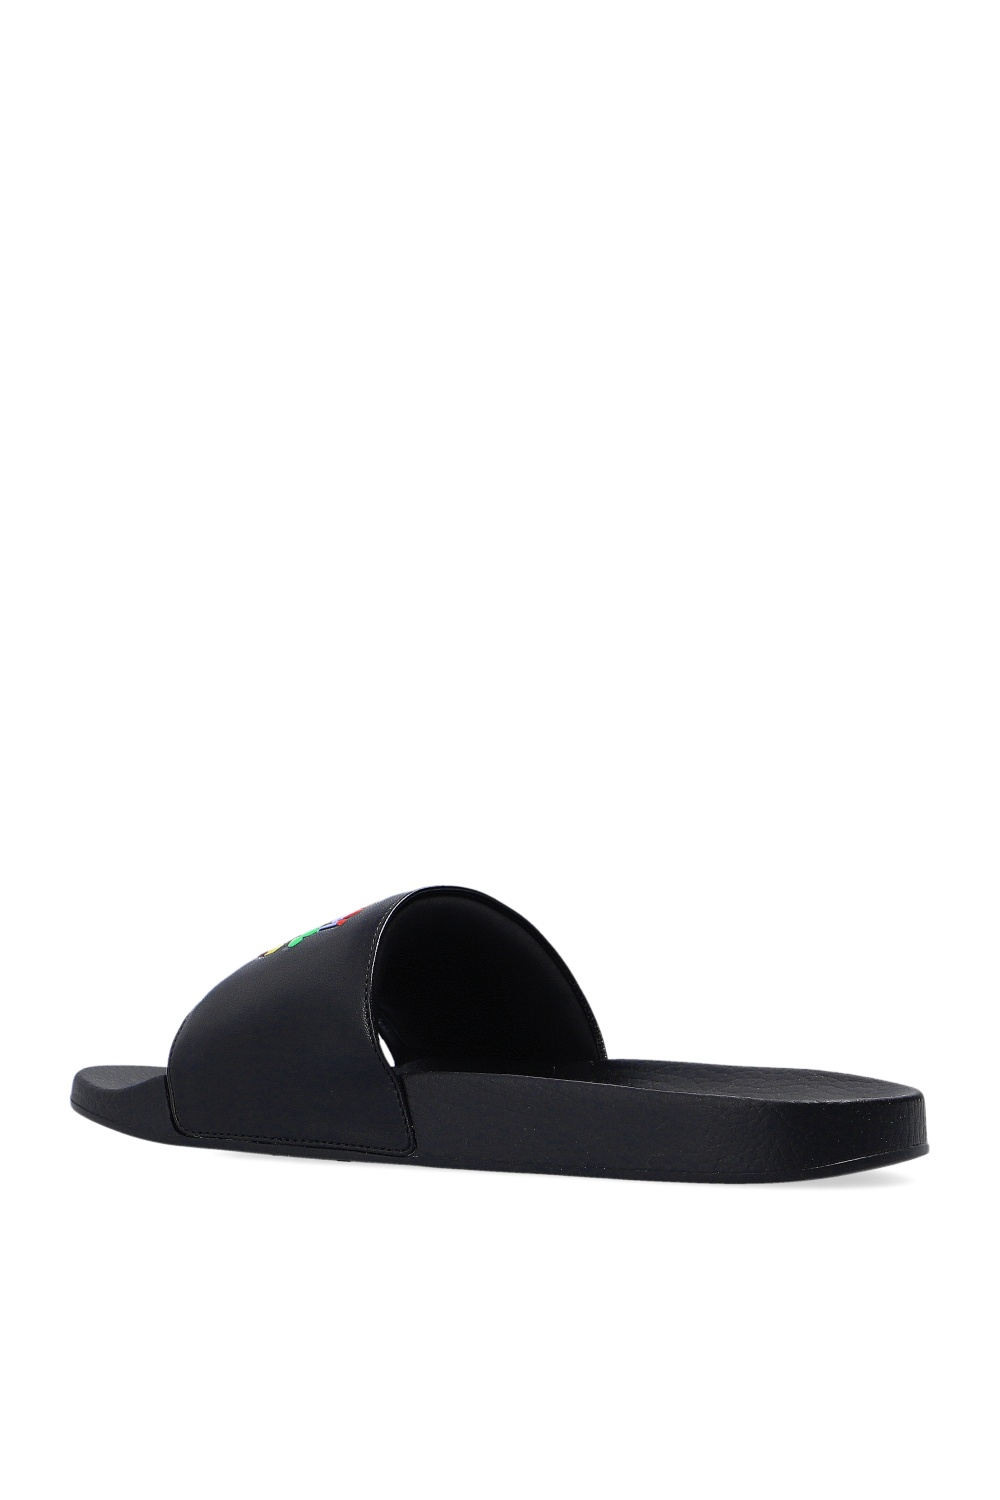 Gucci Rubber slides with logo